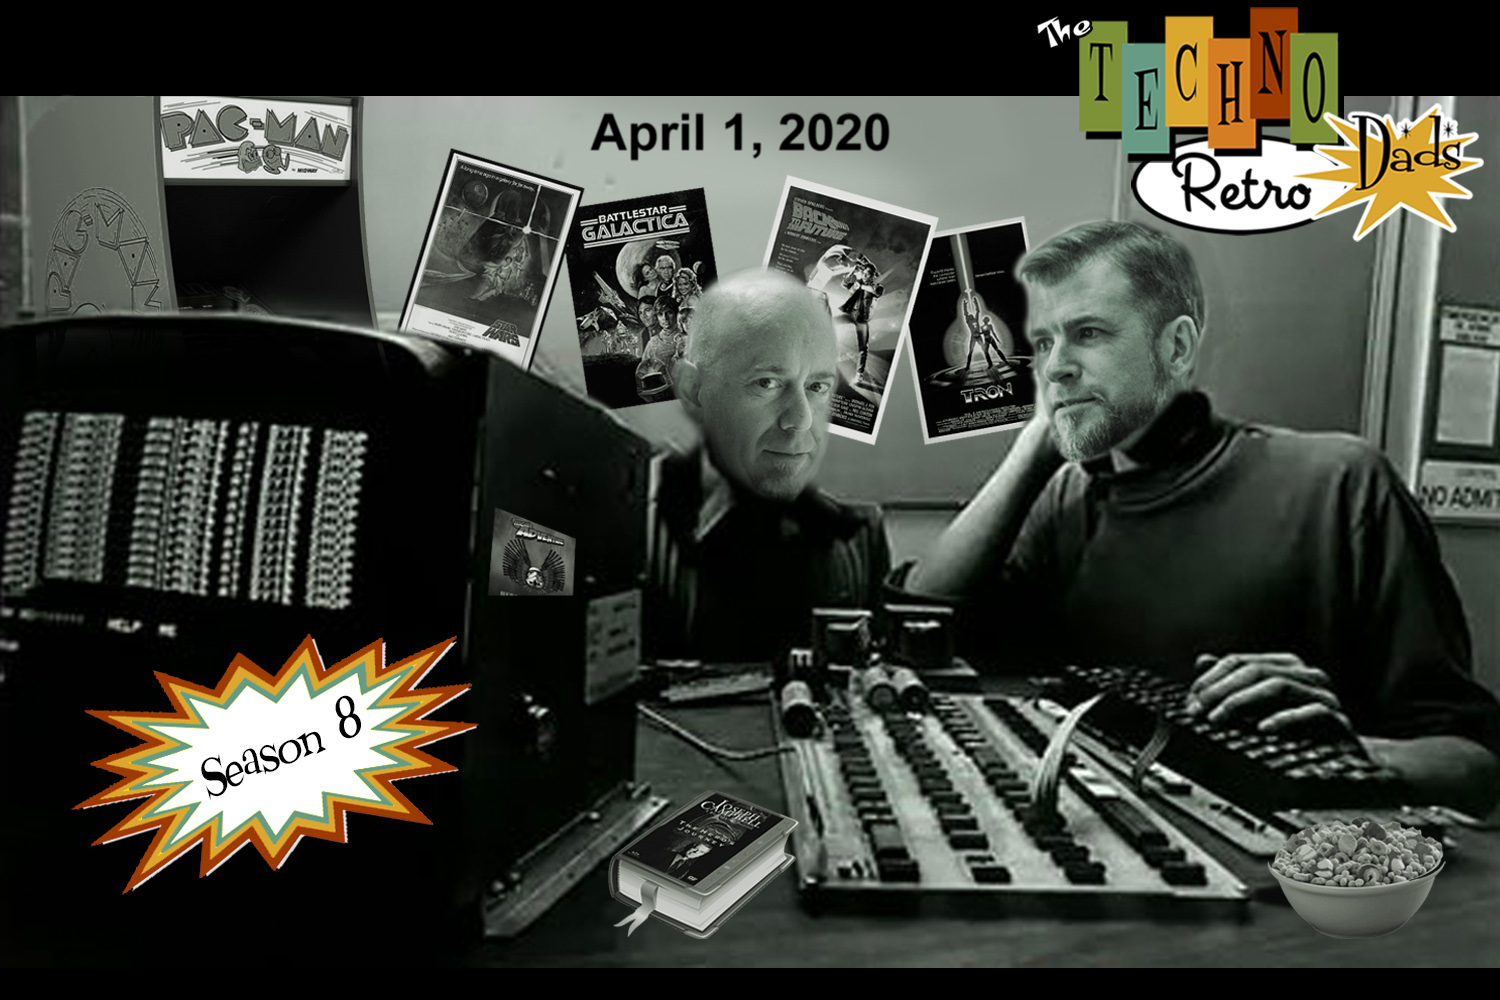 Real People of RetroZap.com: TechnoRetro Dads